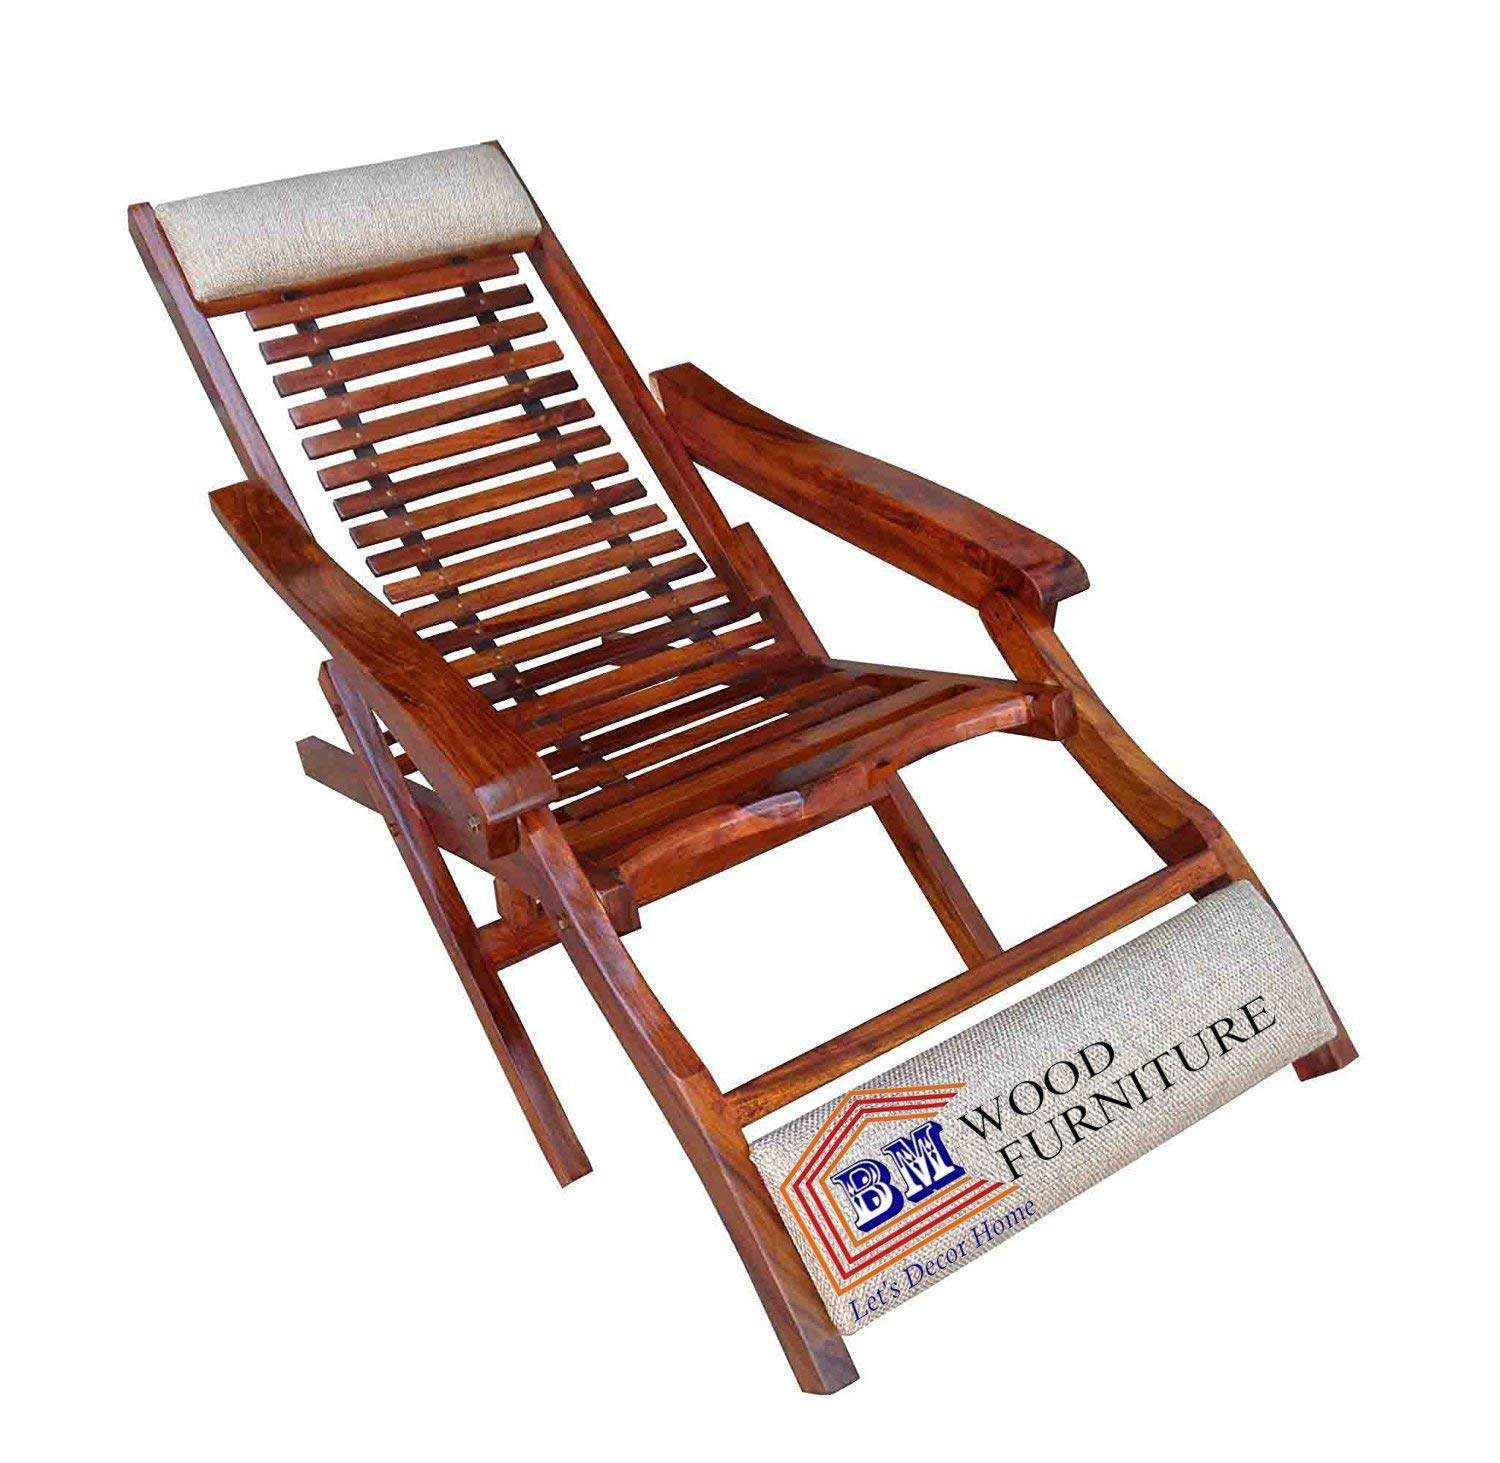 Sheesham Wood Folding Relaxing Beach Chair | Recliner/reclining | Foldable  Easy Chair | With Arm Rest | Natural Brown Finish Intended For Natural Brown Wood Folding Rocking Chairs (#19 of 20)